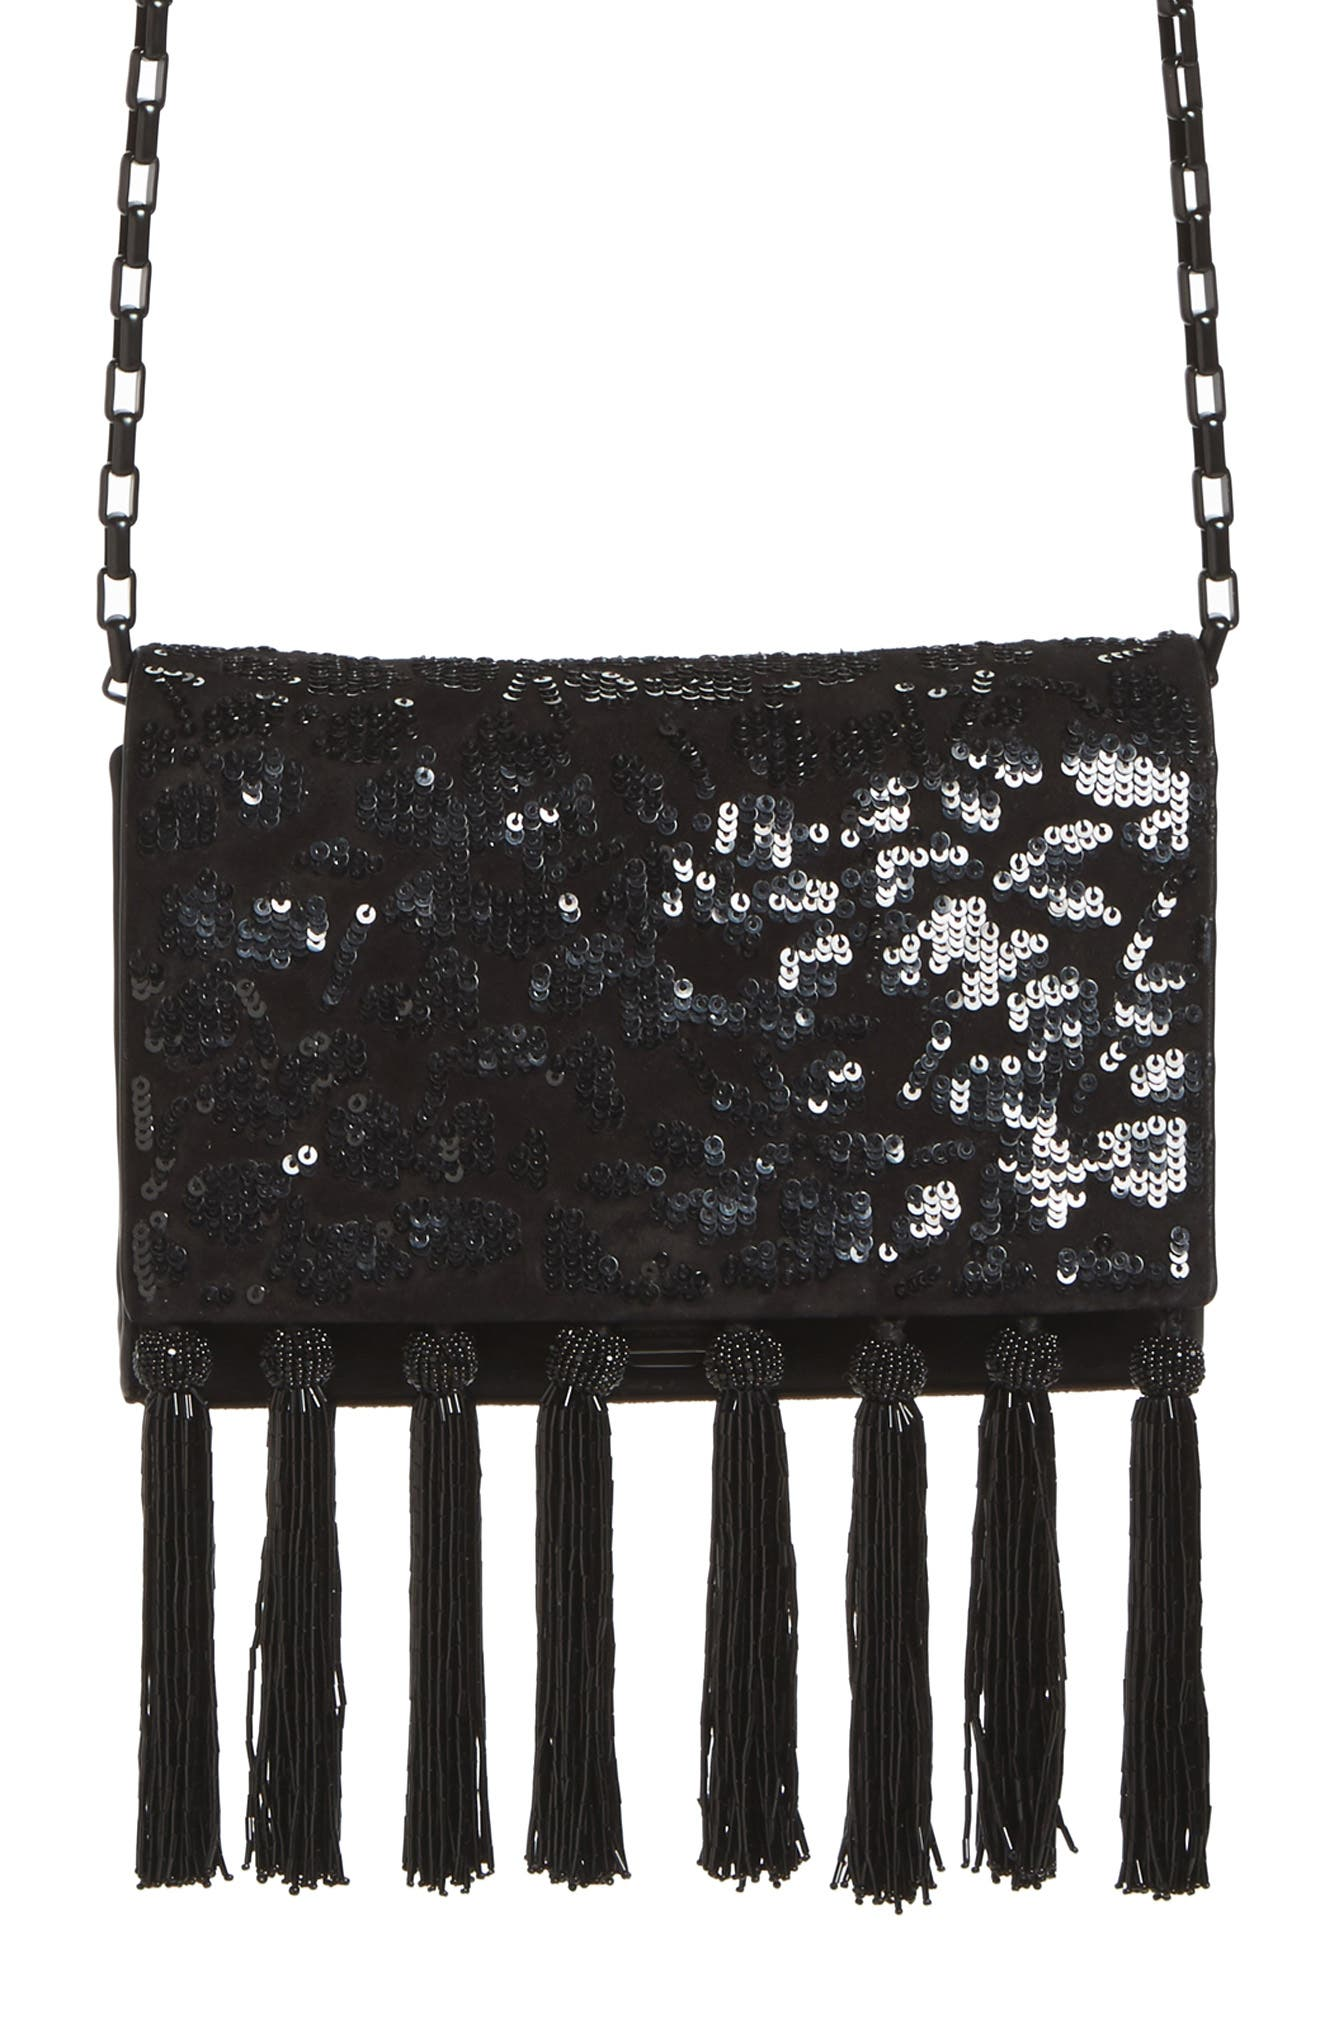 Alternate Image 1 Selected - Michael Kors Yasmeen Sequin & Tassel Suede Clutch